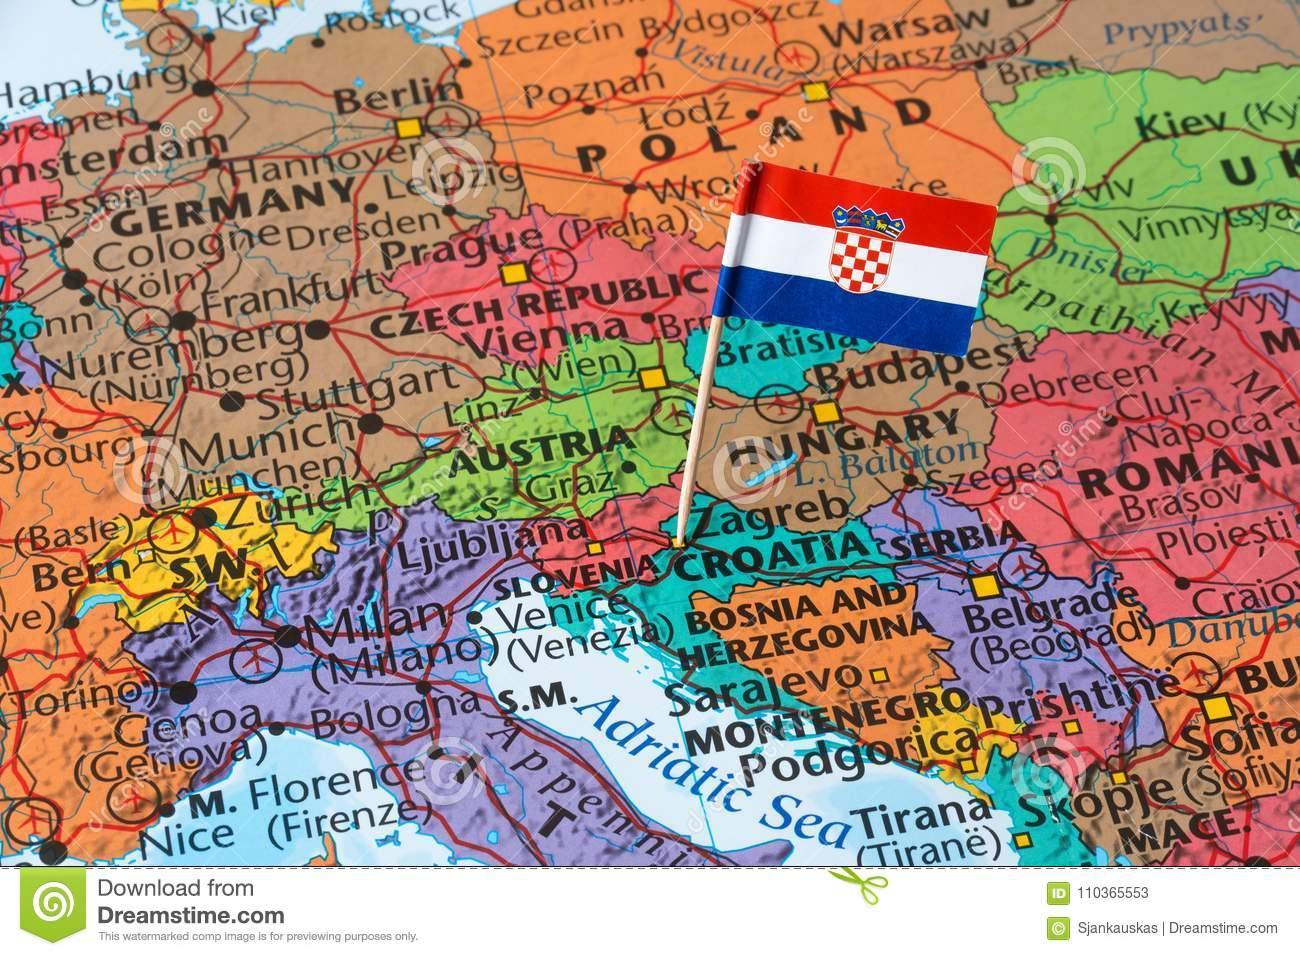 Croatia Flag On A World Map Stock Image - Image of geography ...